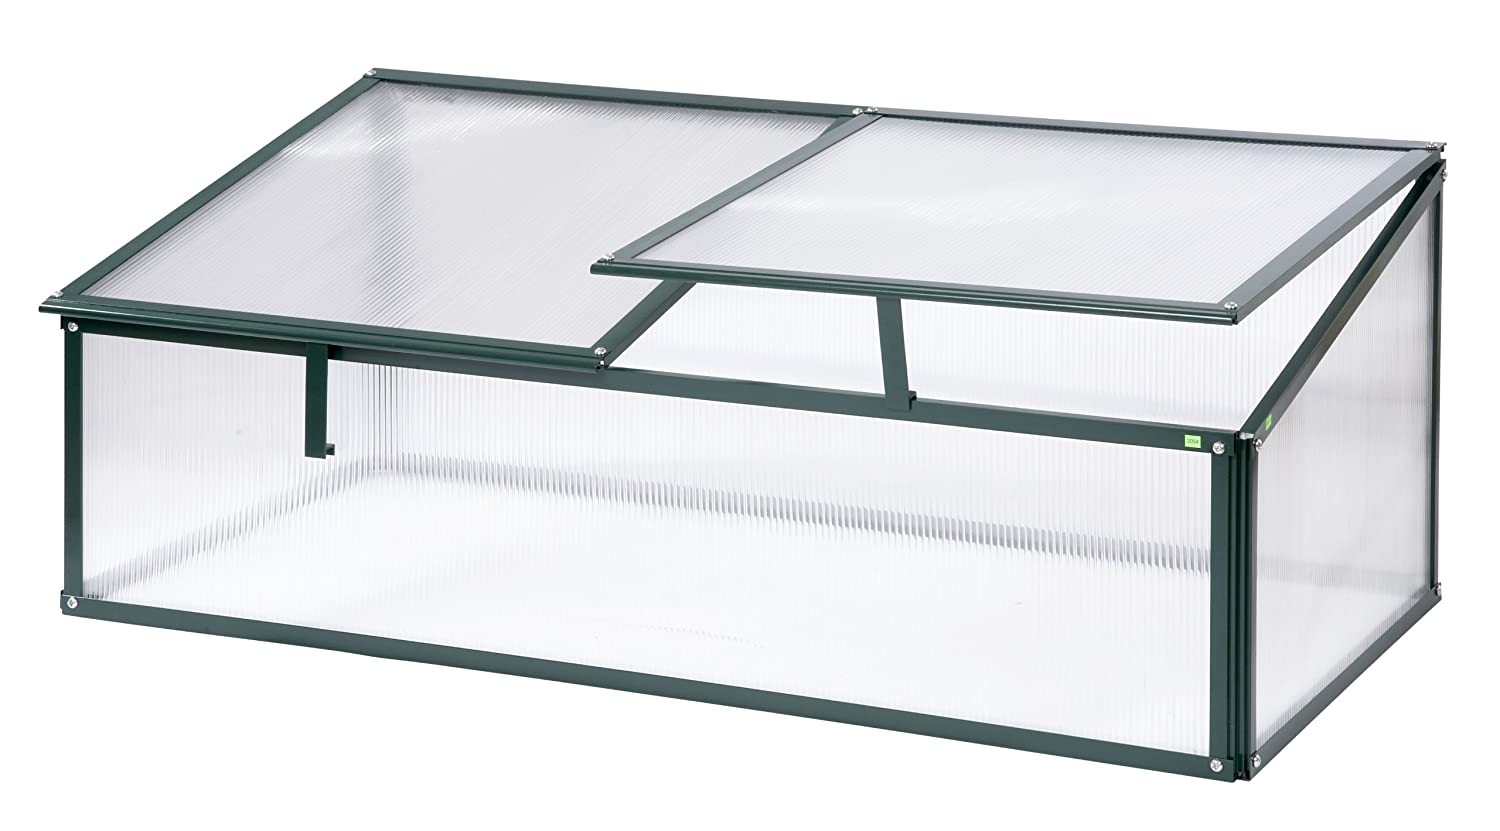 Polycarbonates single Safety Garden cold frame/Mini Grow House Propagator **OLD COTTAGE GREEN** Simplicity 00101